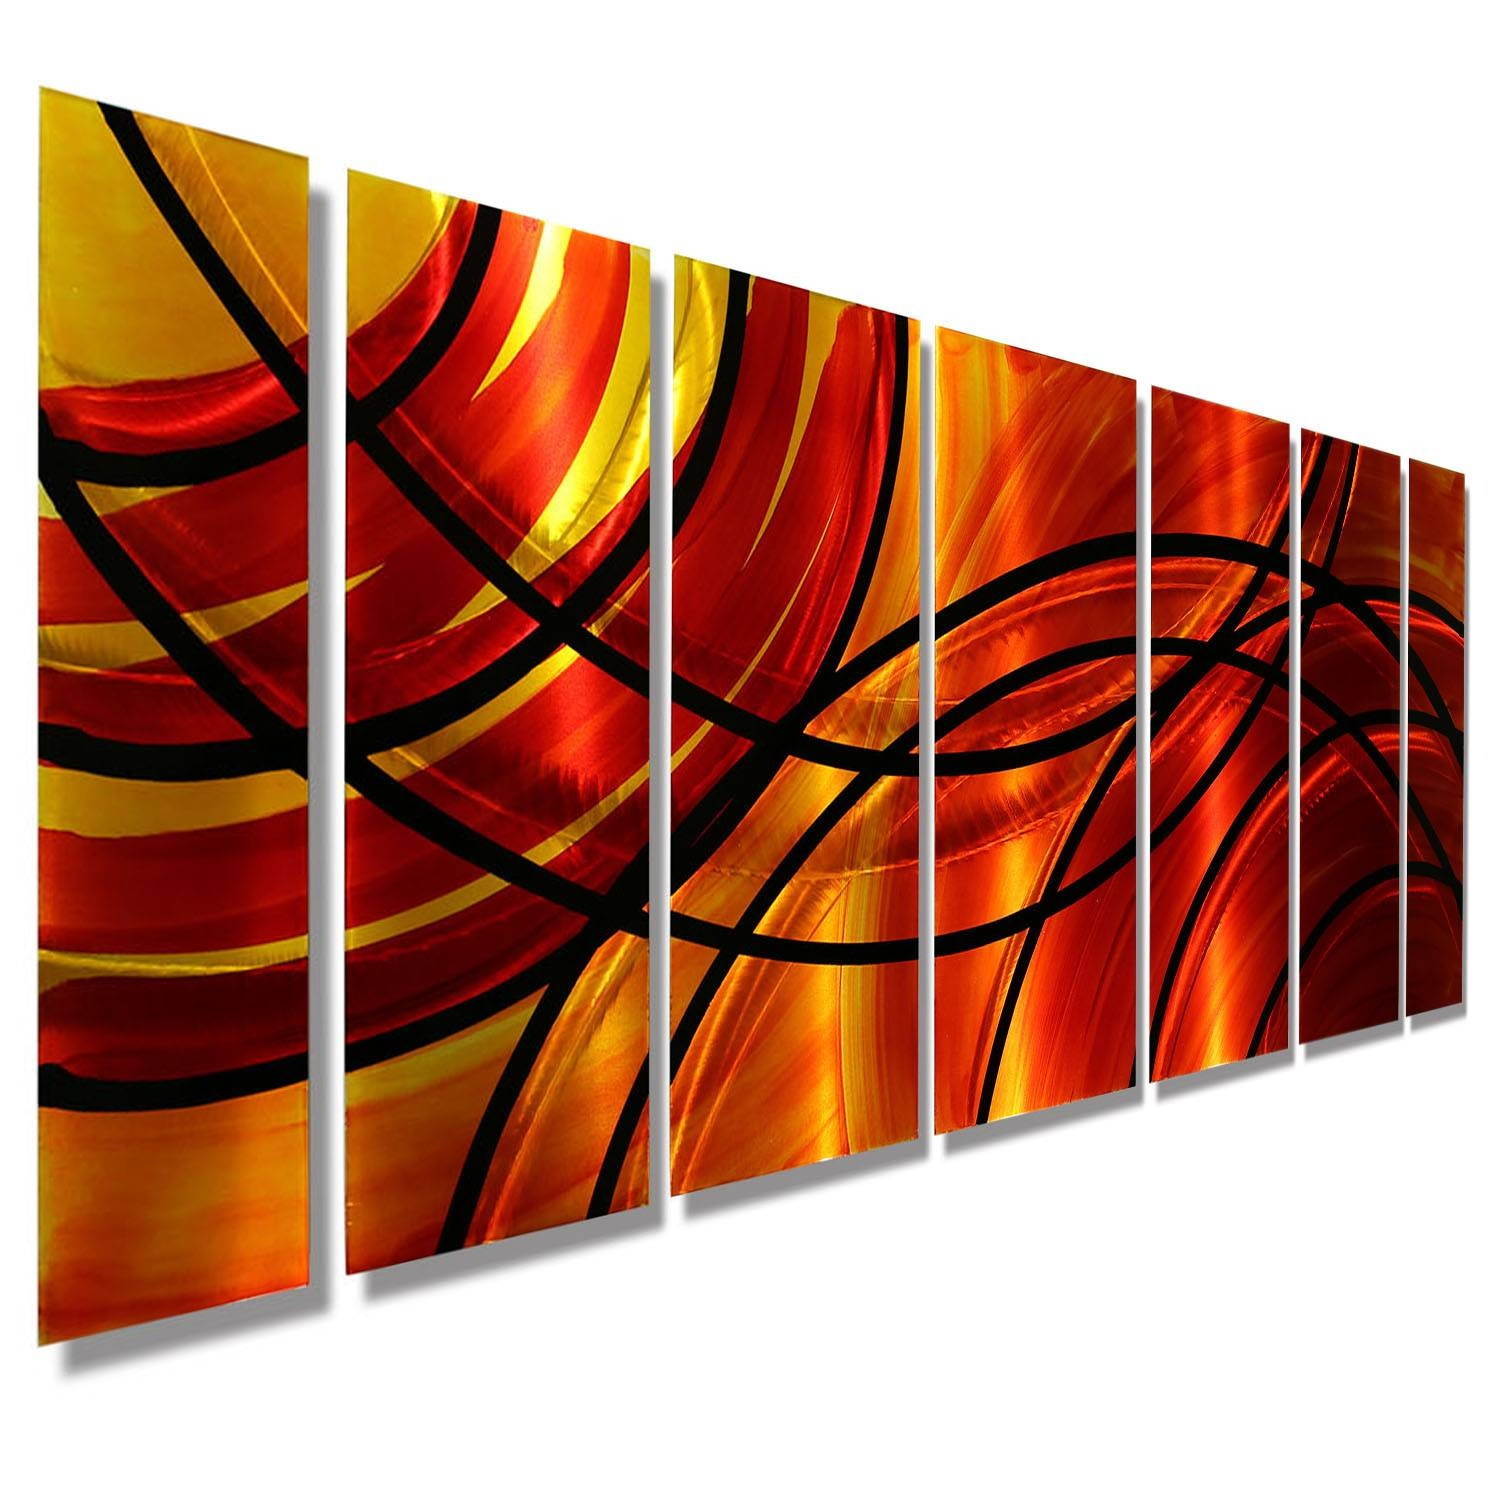 Boundfire Xl – Extra Large, Colorful Red And Orange Metal Wall With Regard To Latest Abstract Wall Art With Clock (View 7 of 20)